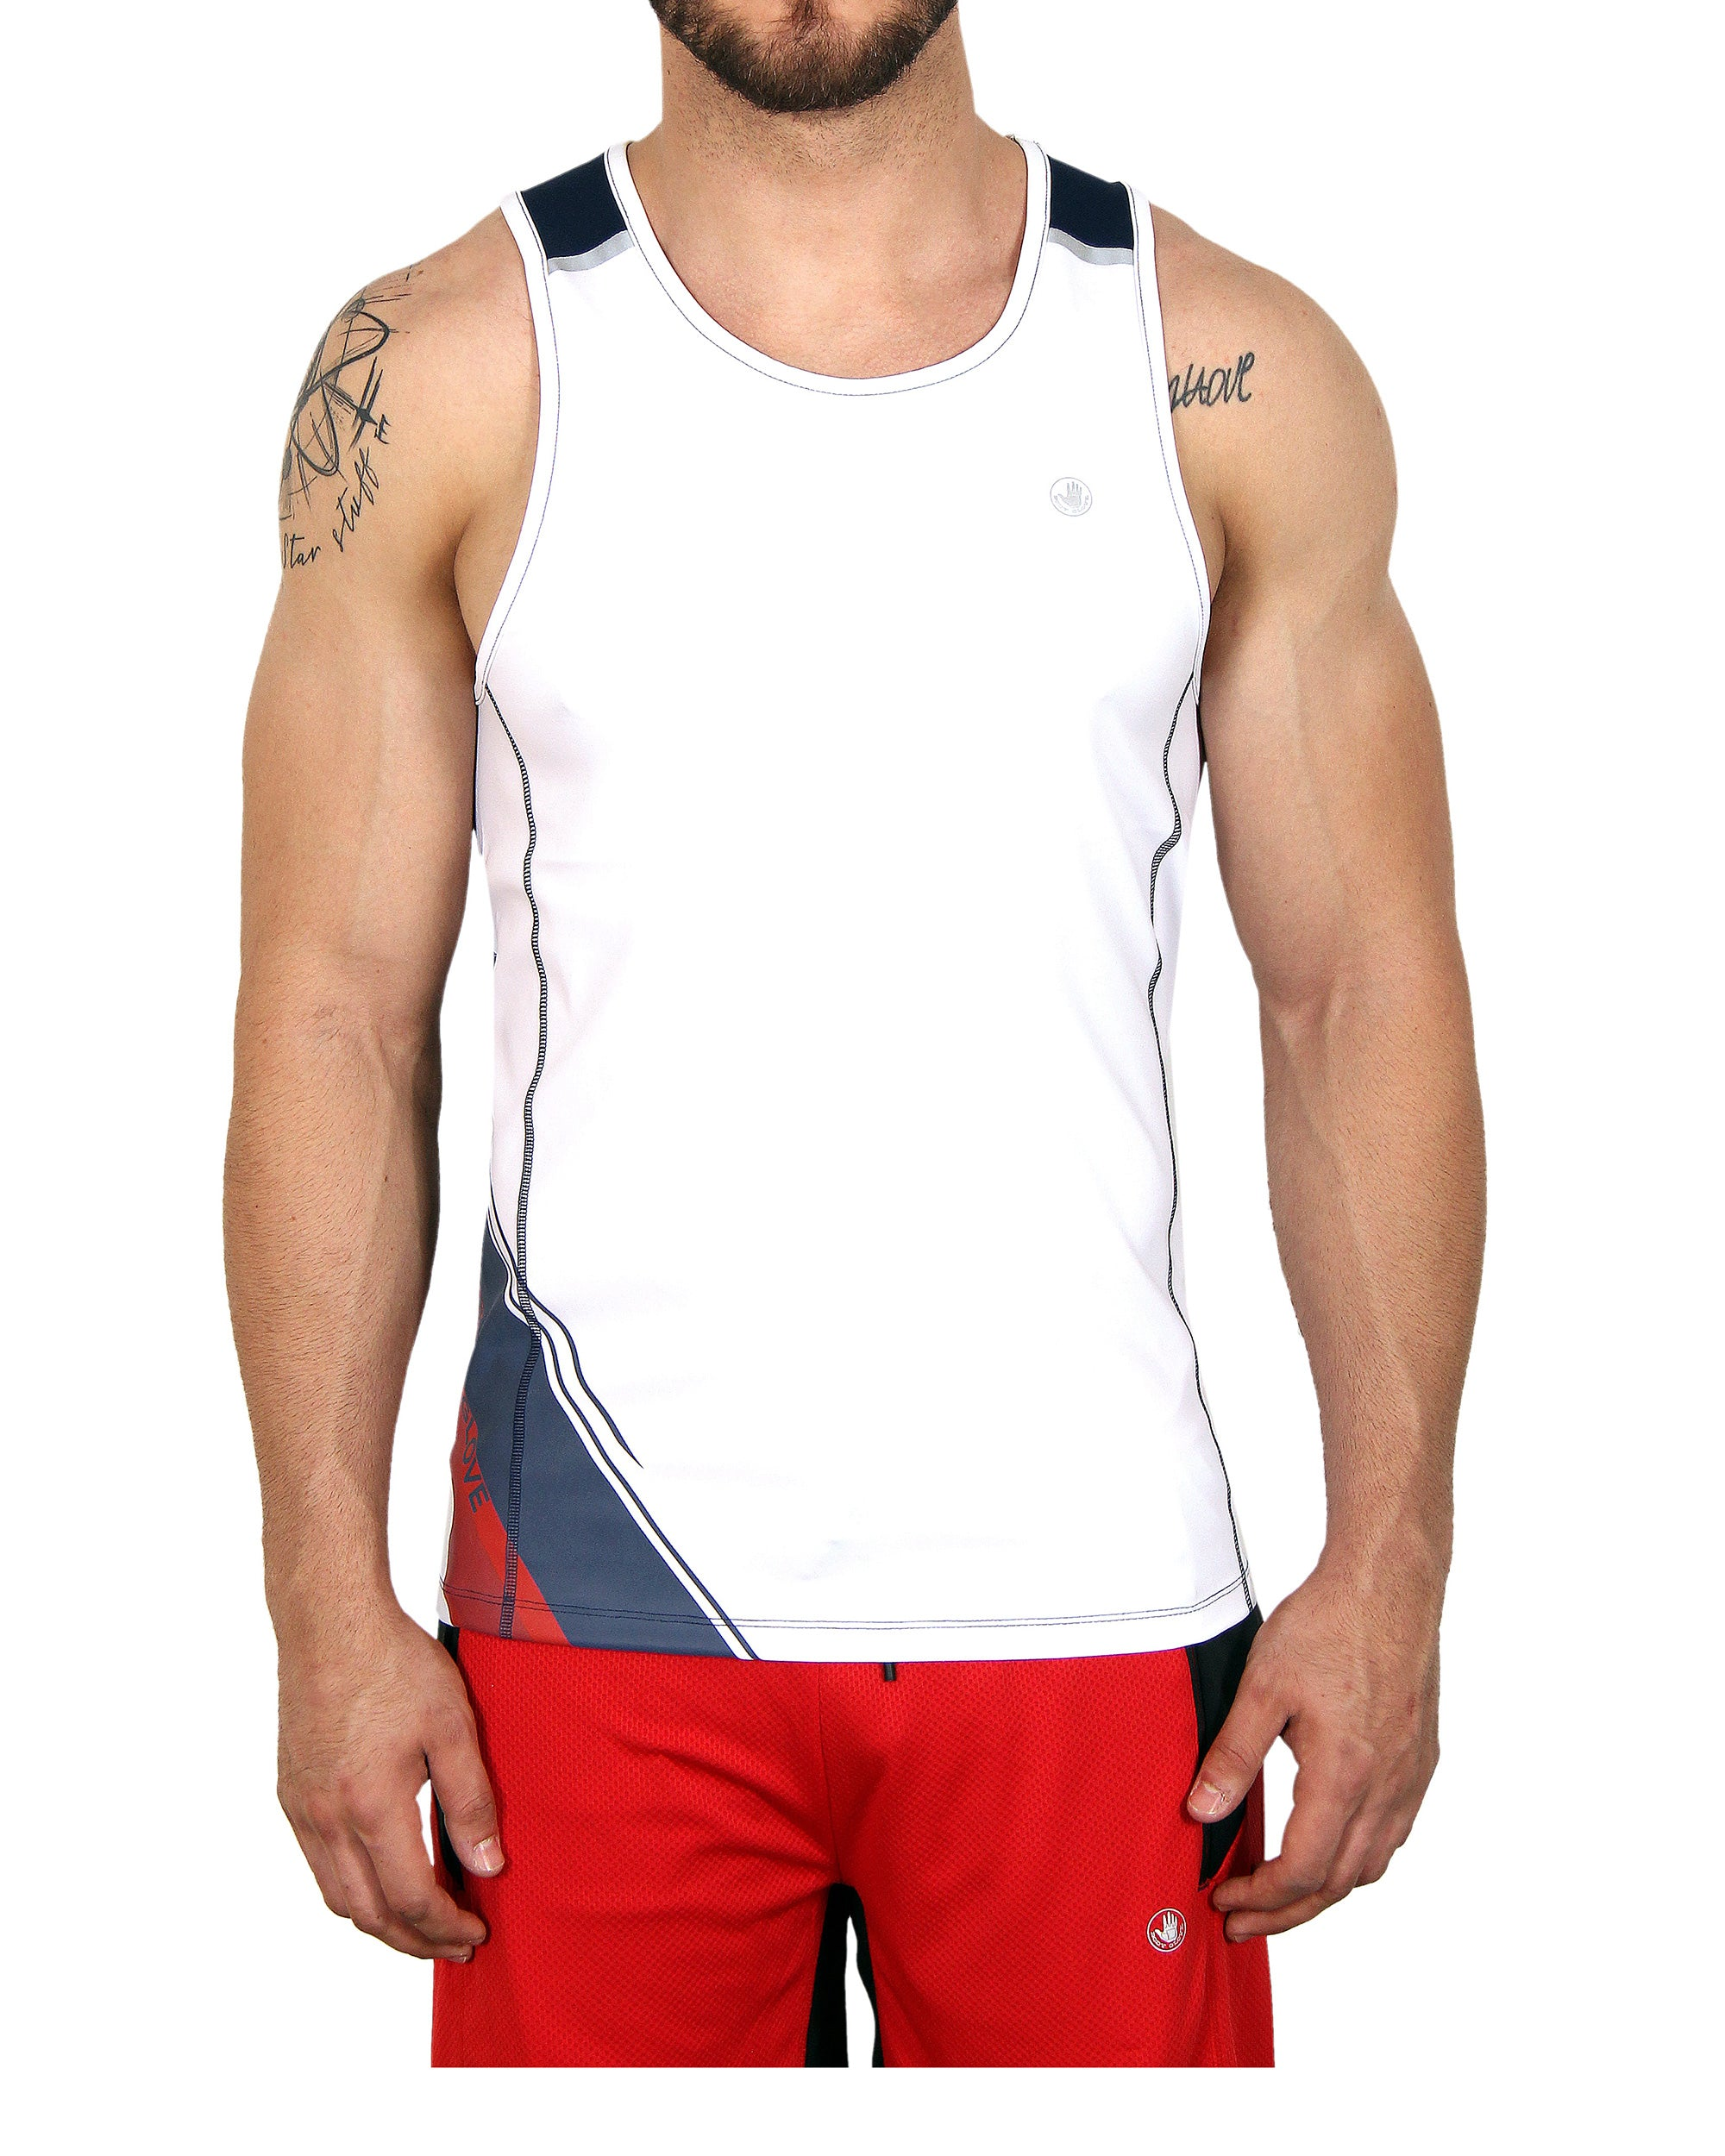 Men's Muscle Tee - White